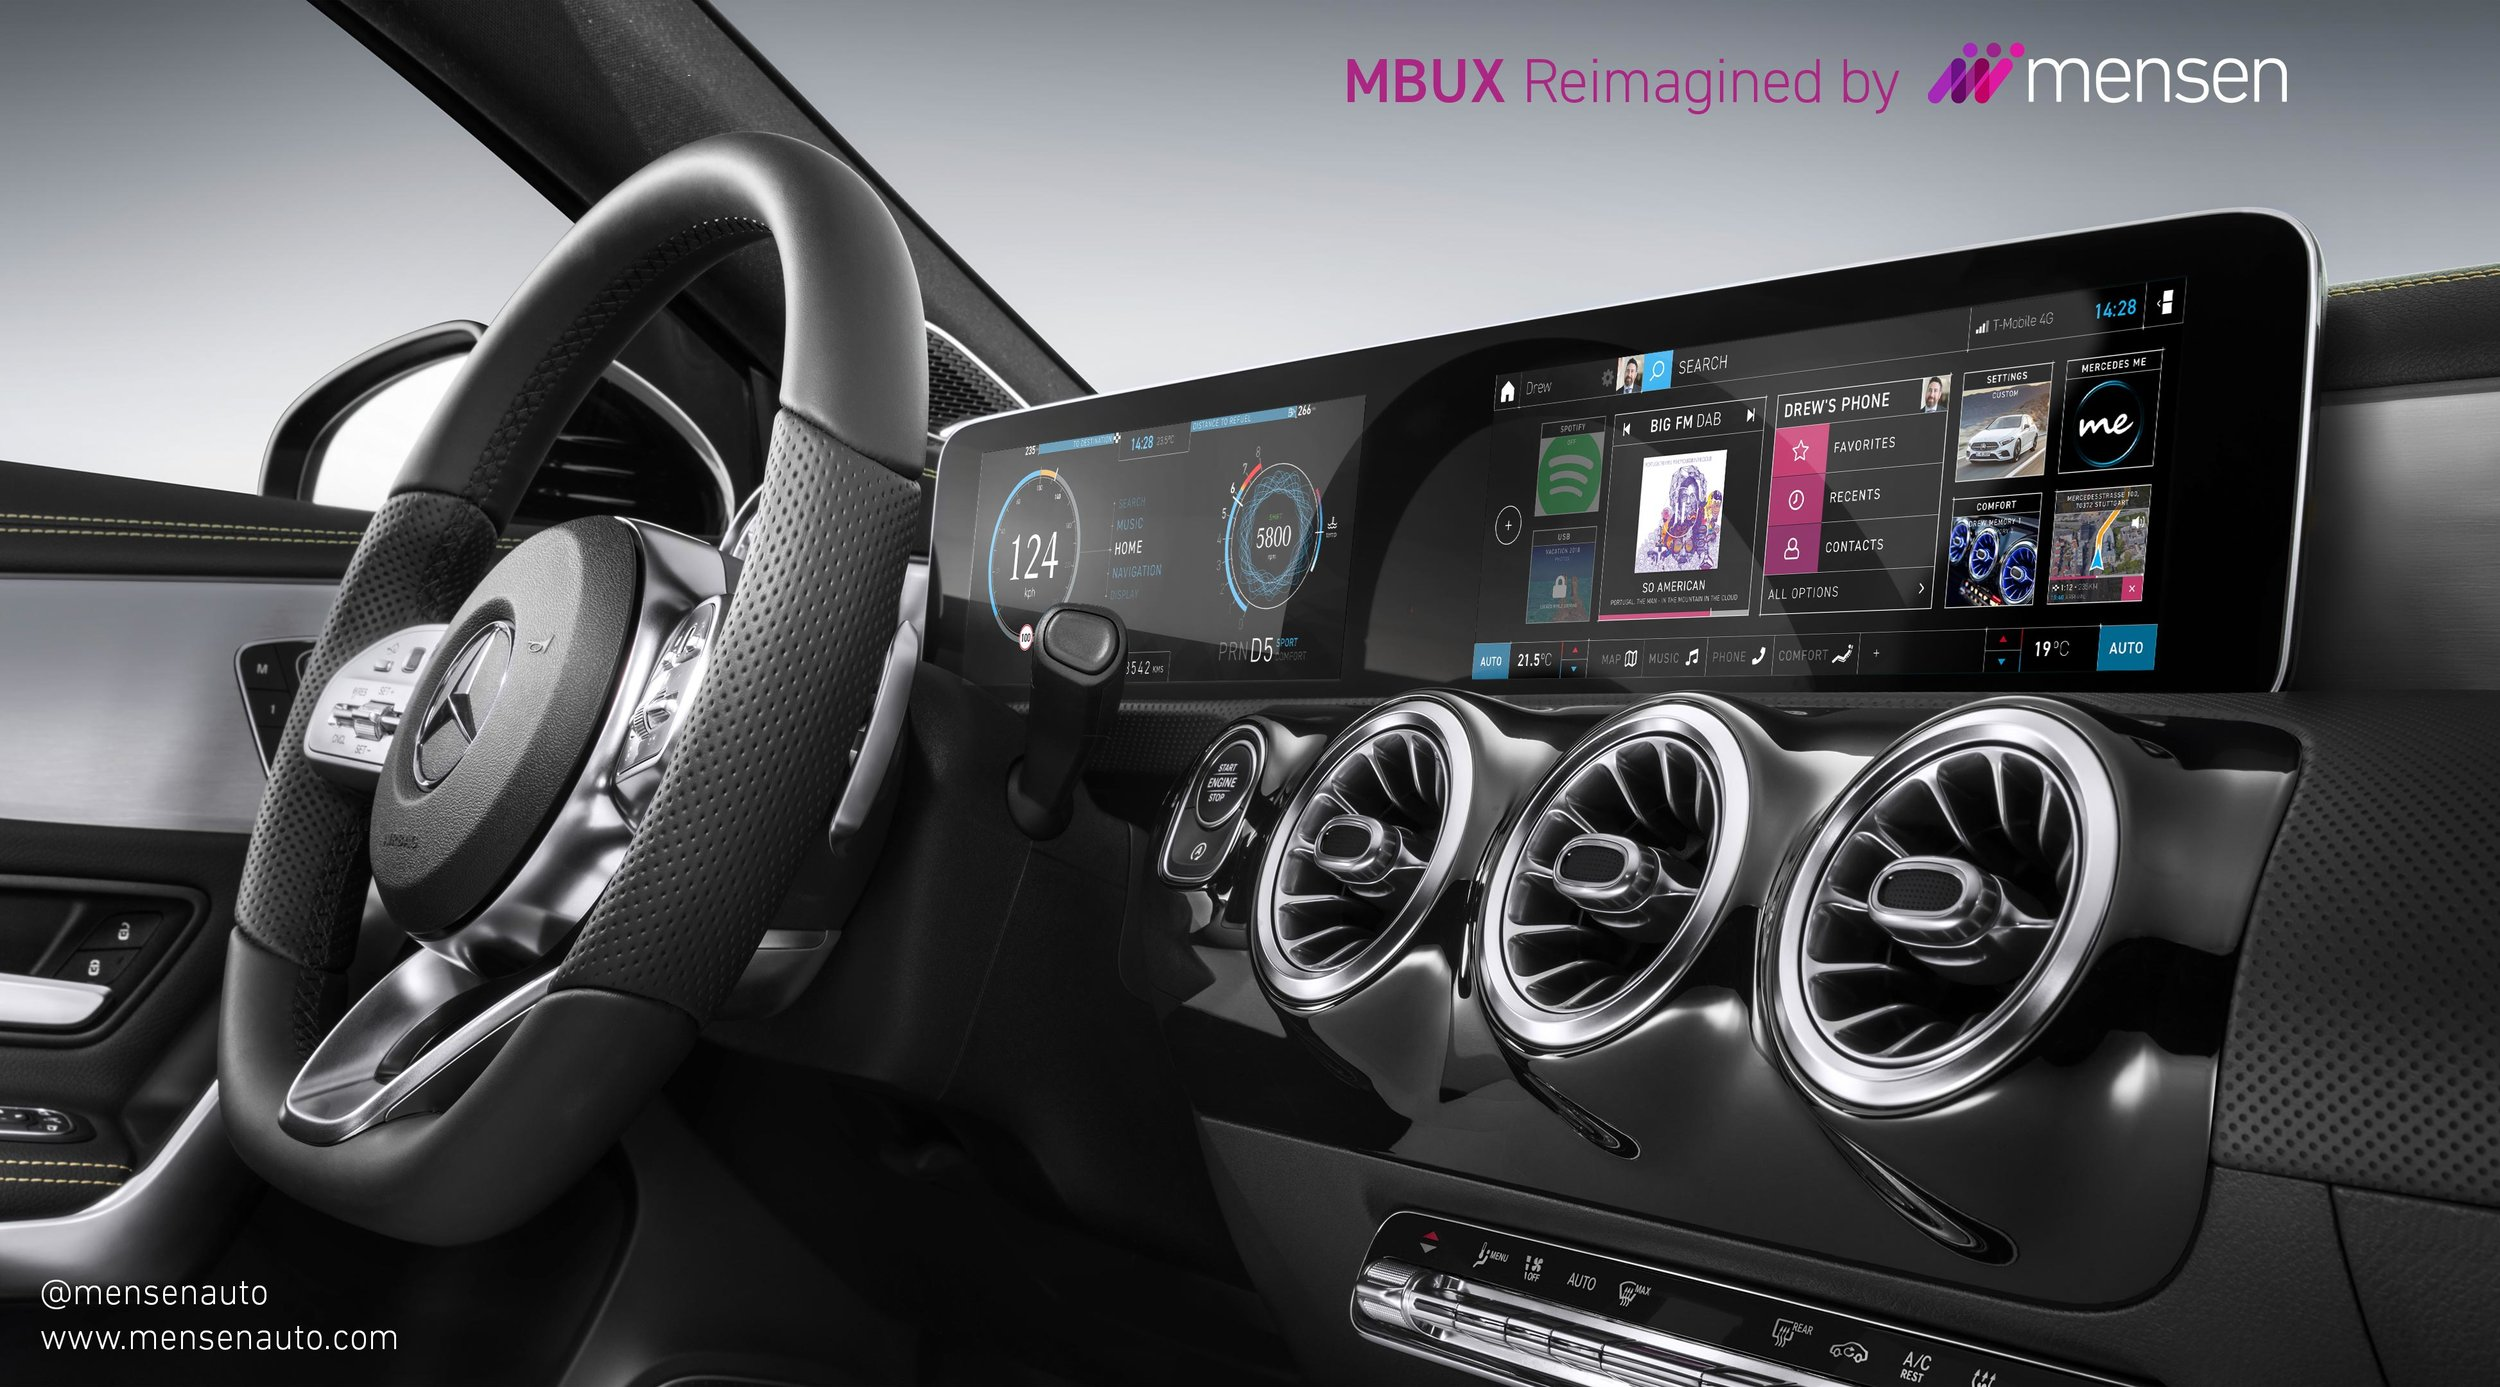 Our reimagined MBUX in the 2018 A-Class interior